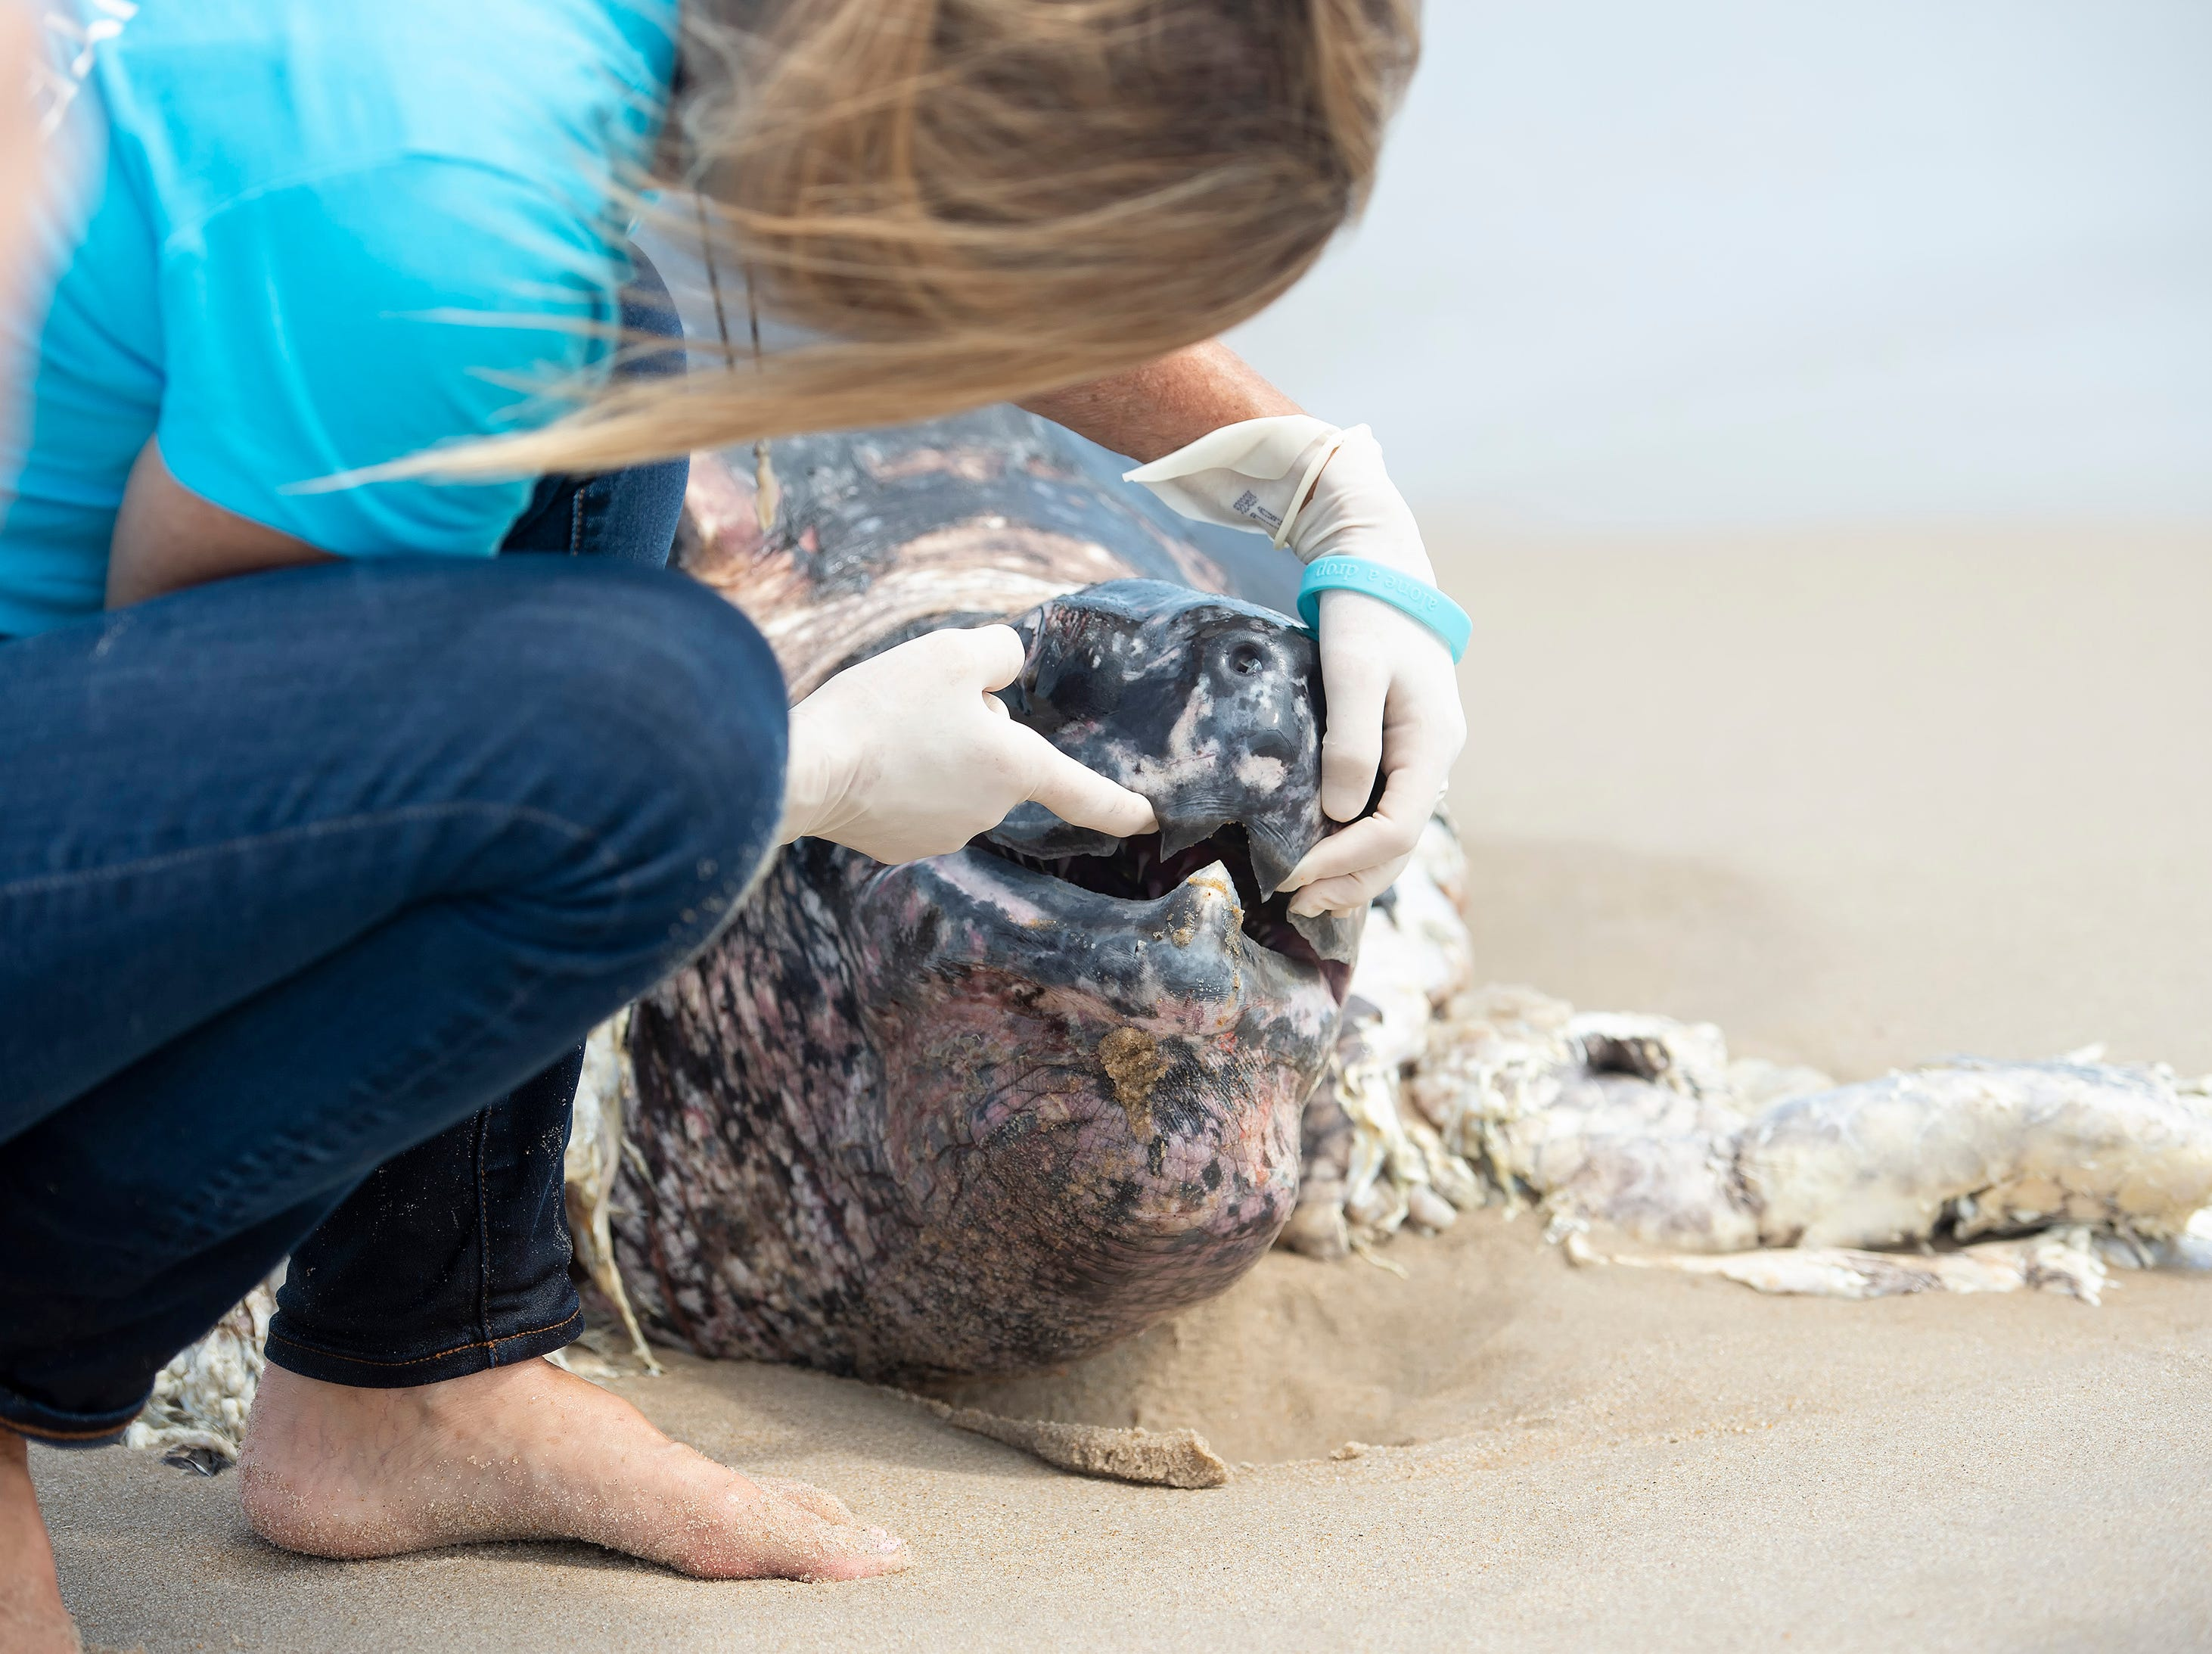 Suzanne Thurman, executive director of the MERR Institute, examines the leatherback sea turtle that washed up along the Delaware Seashore State Park Beach, Tower Road south of Dewey Beach.